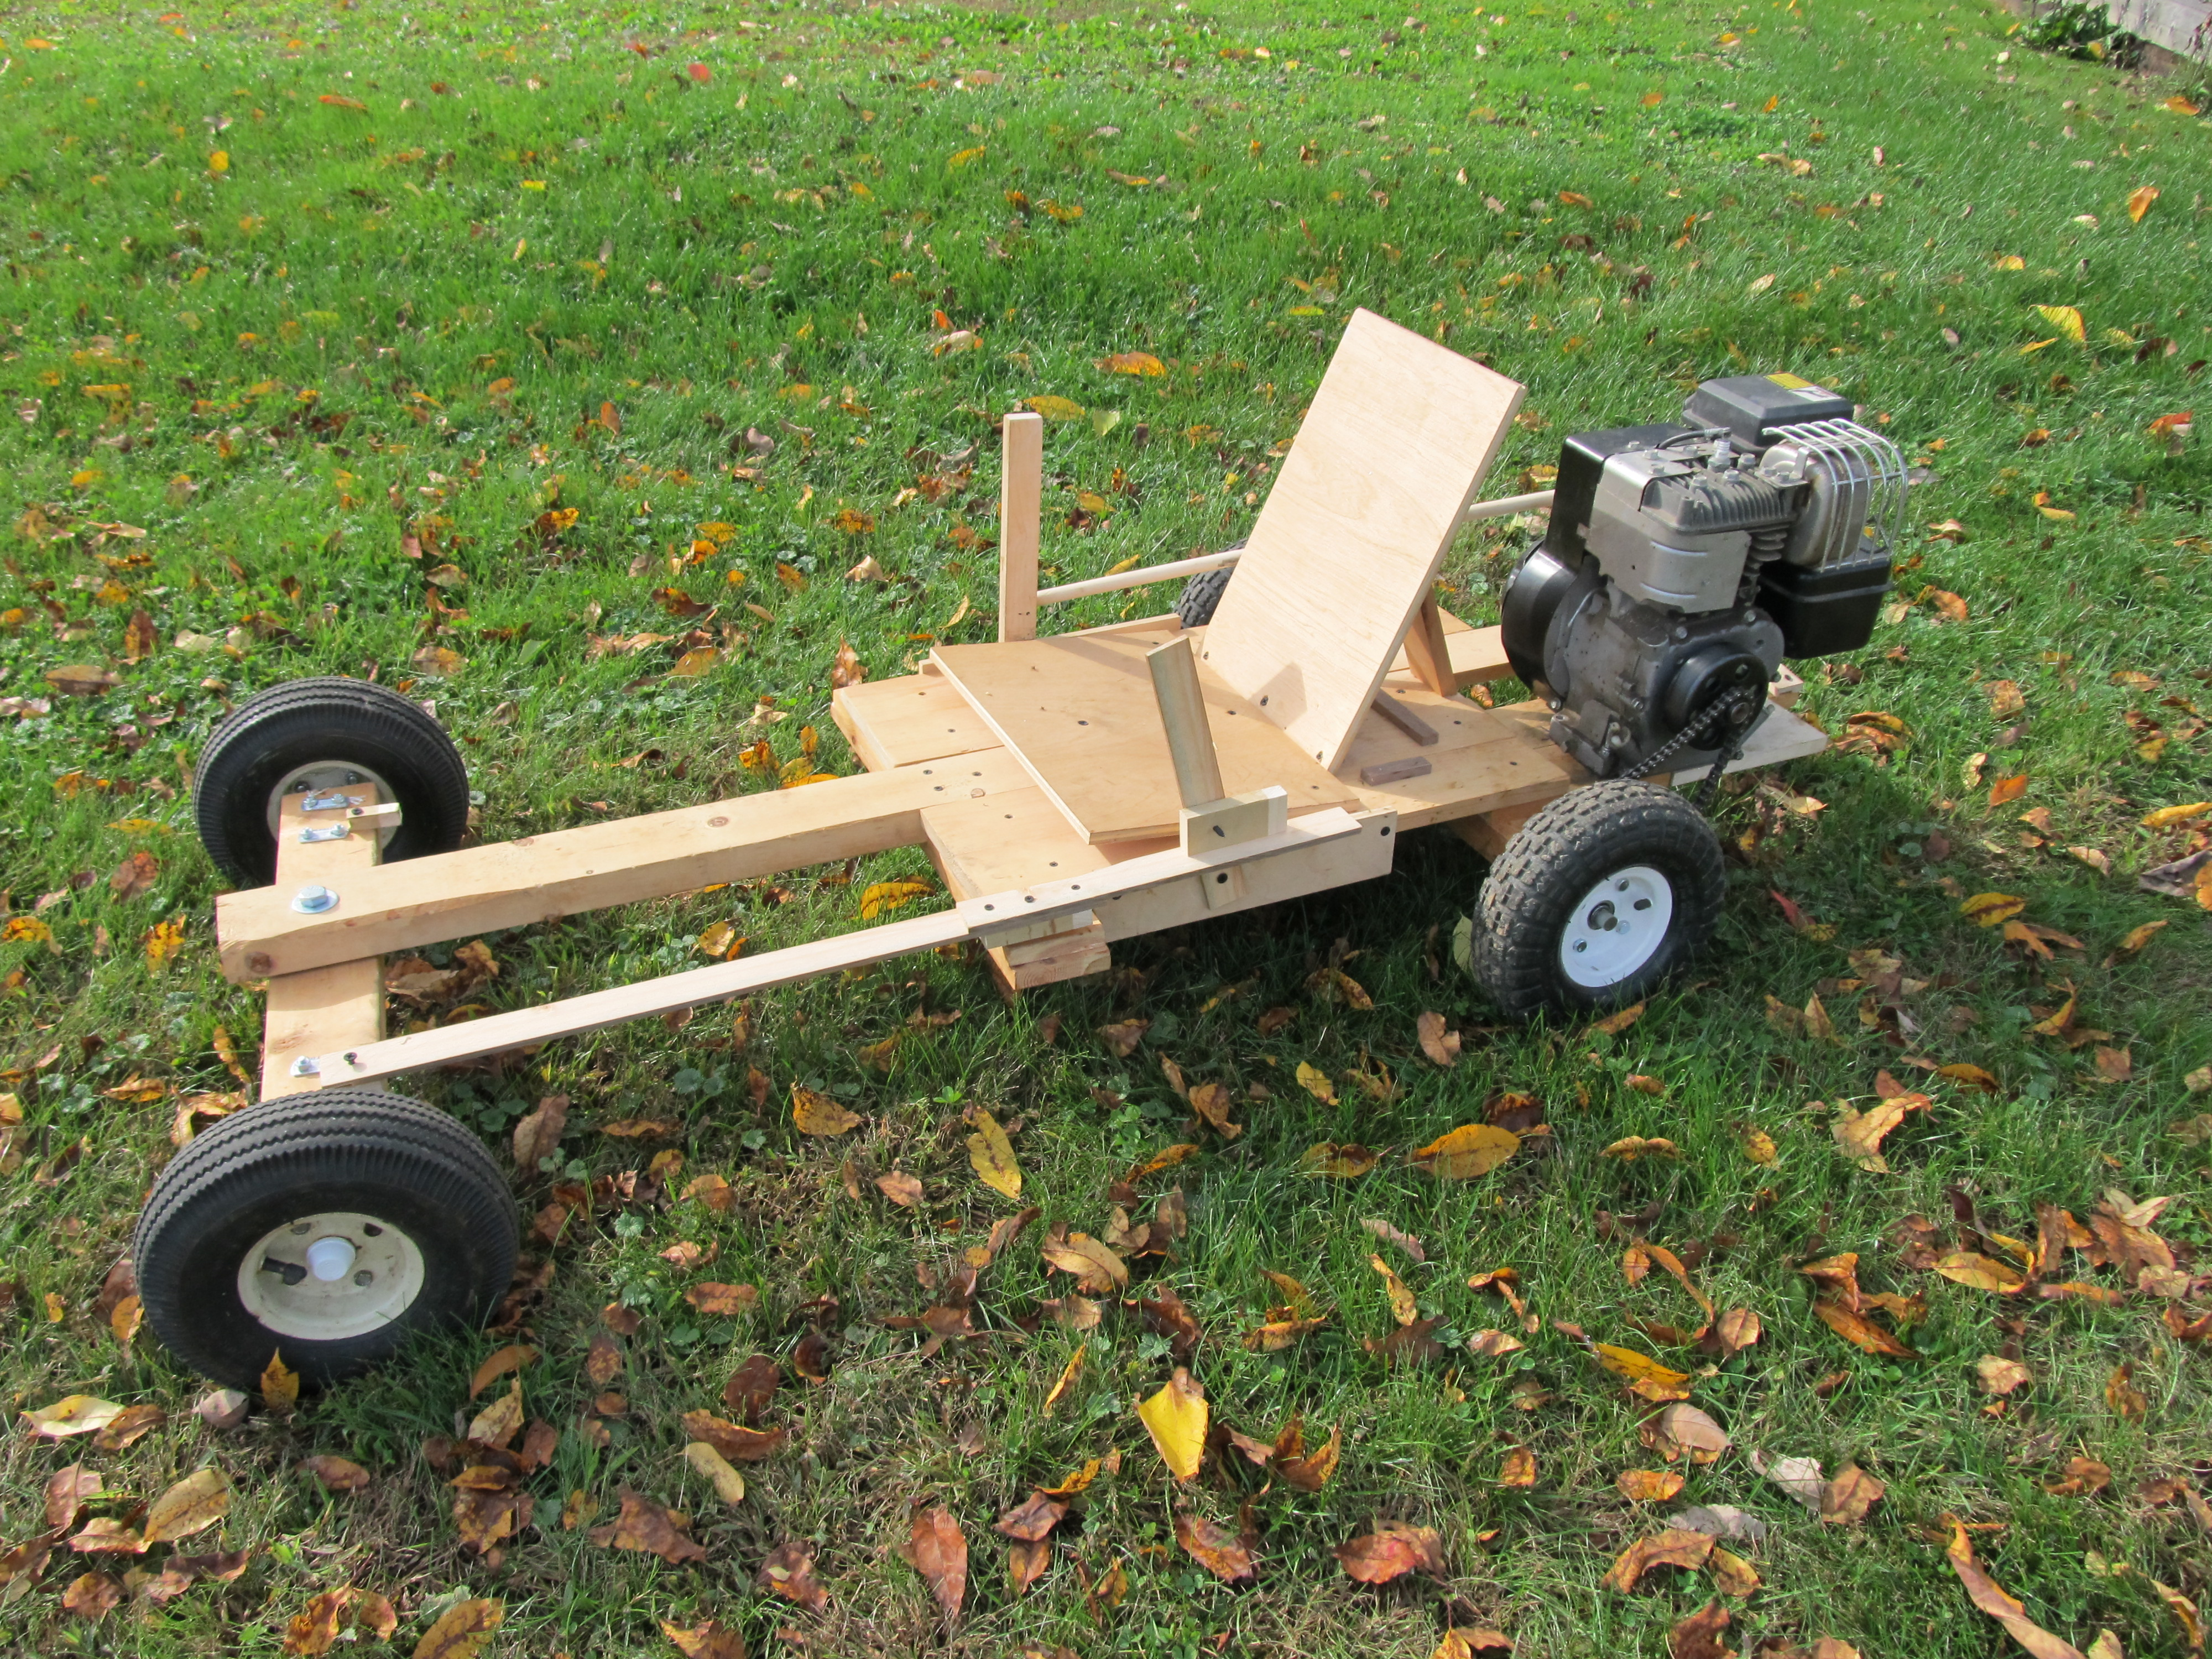 Homemade Wooden GoKart: 6 Steps (with Pictures)